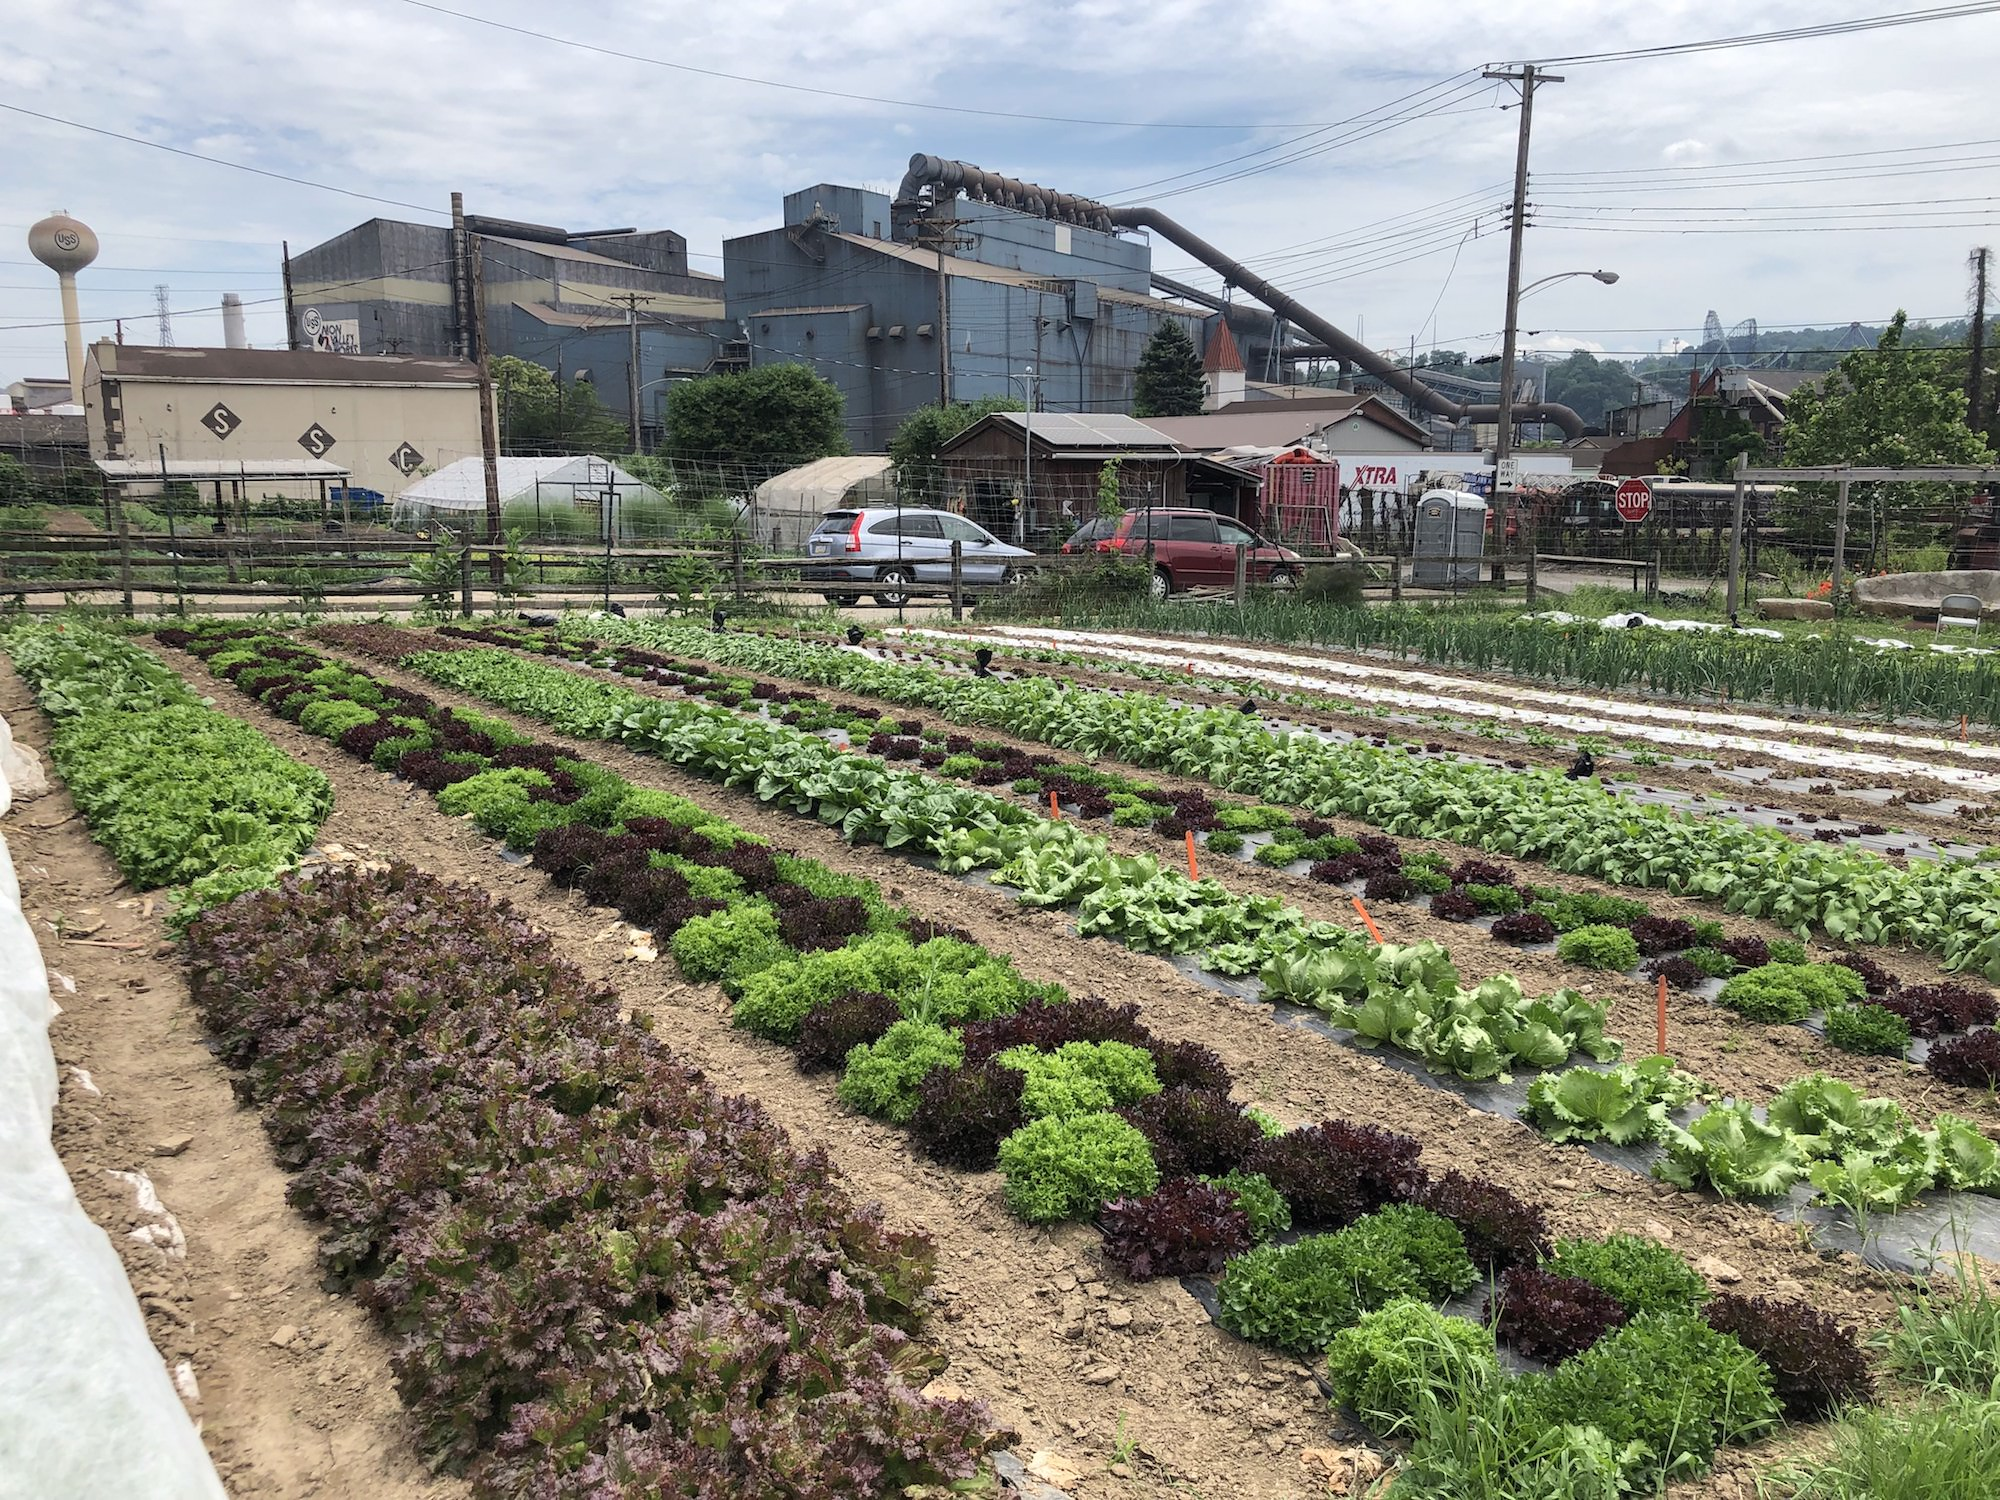 rows of plants grow outdoors from the earth with a blue industrial warehouse in the background